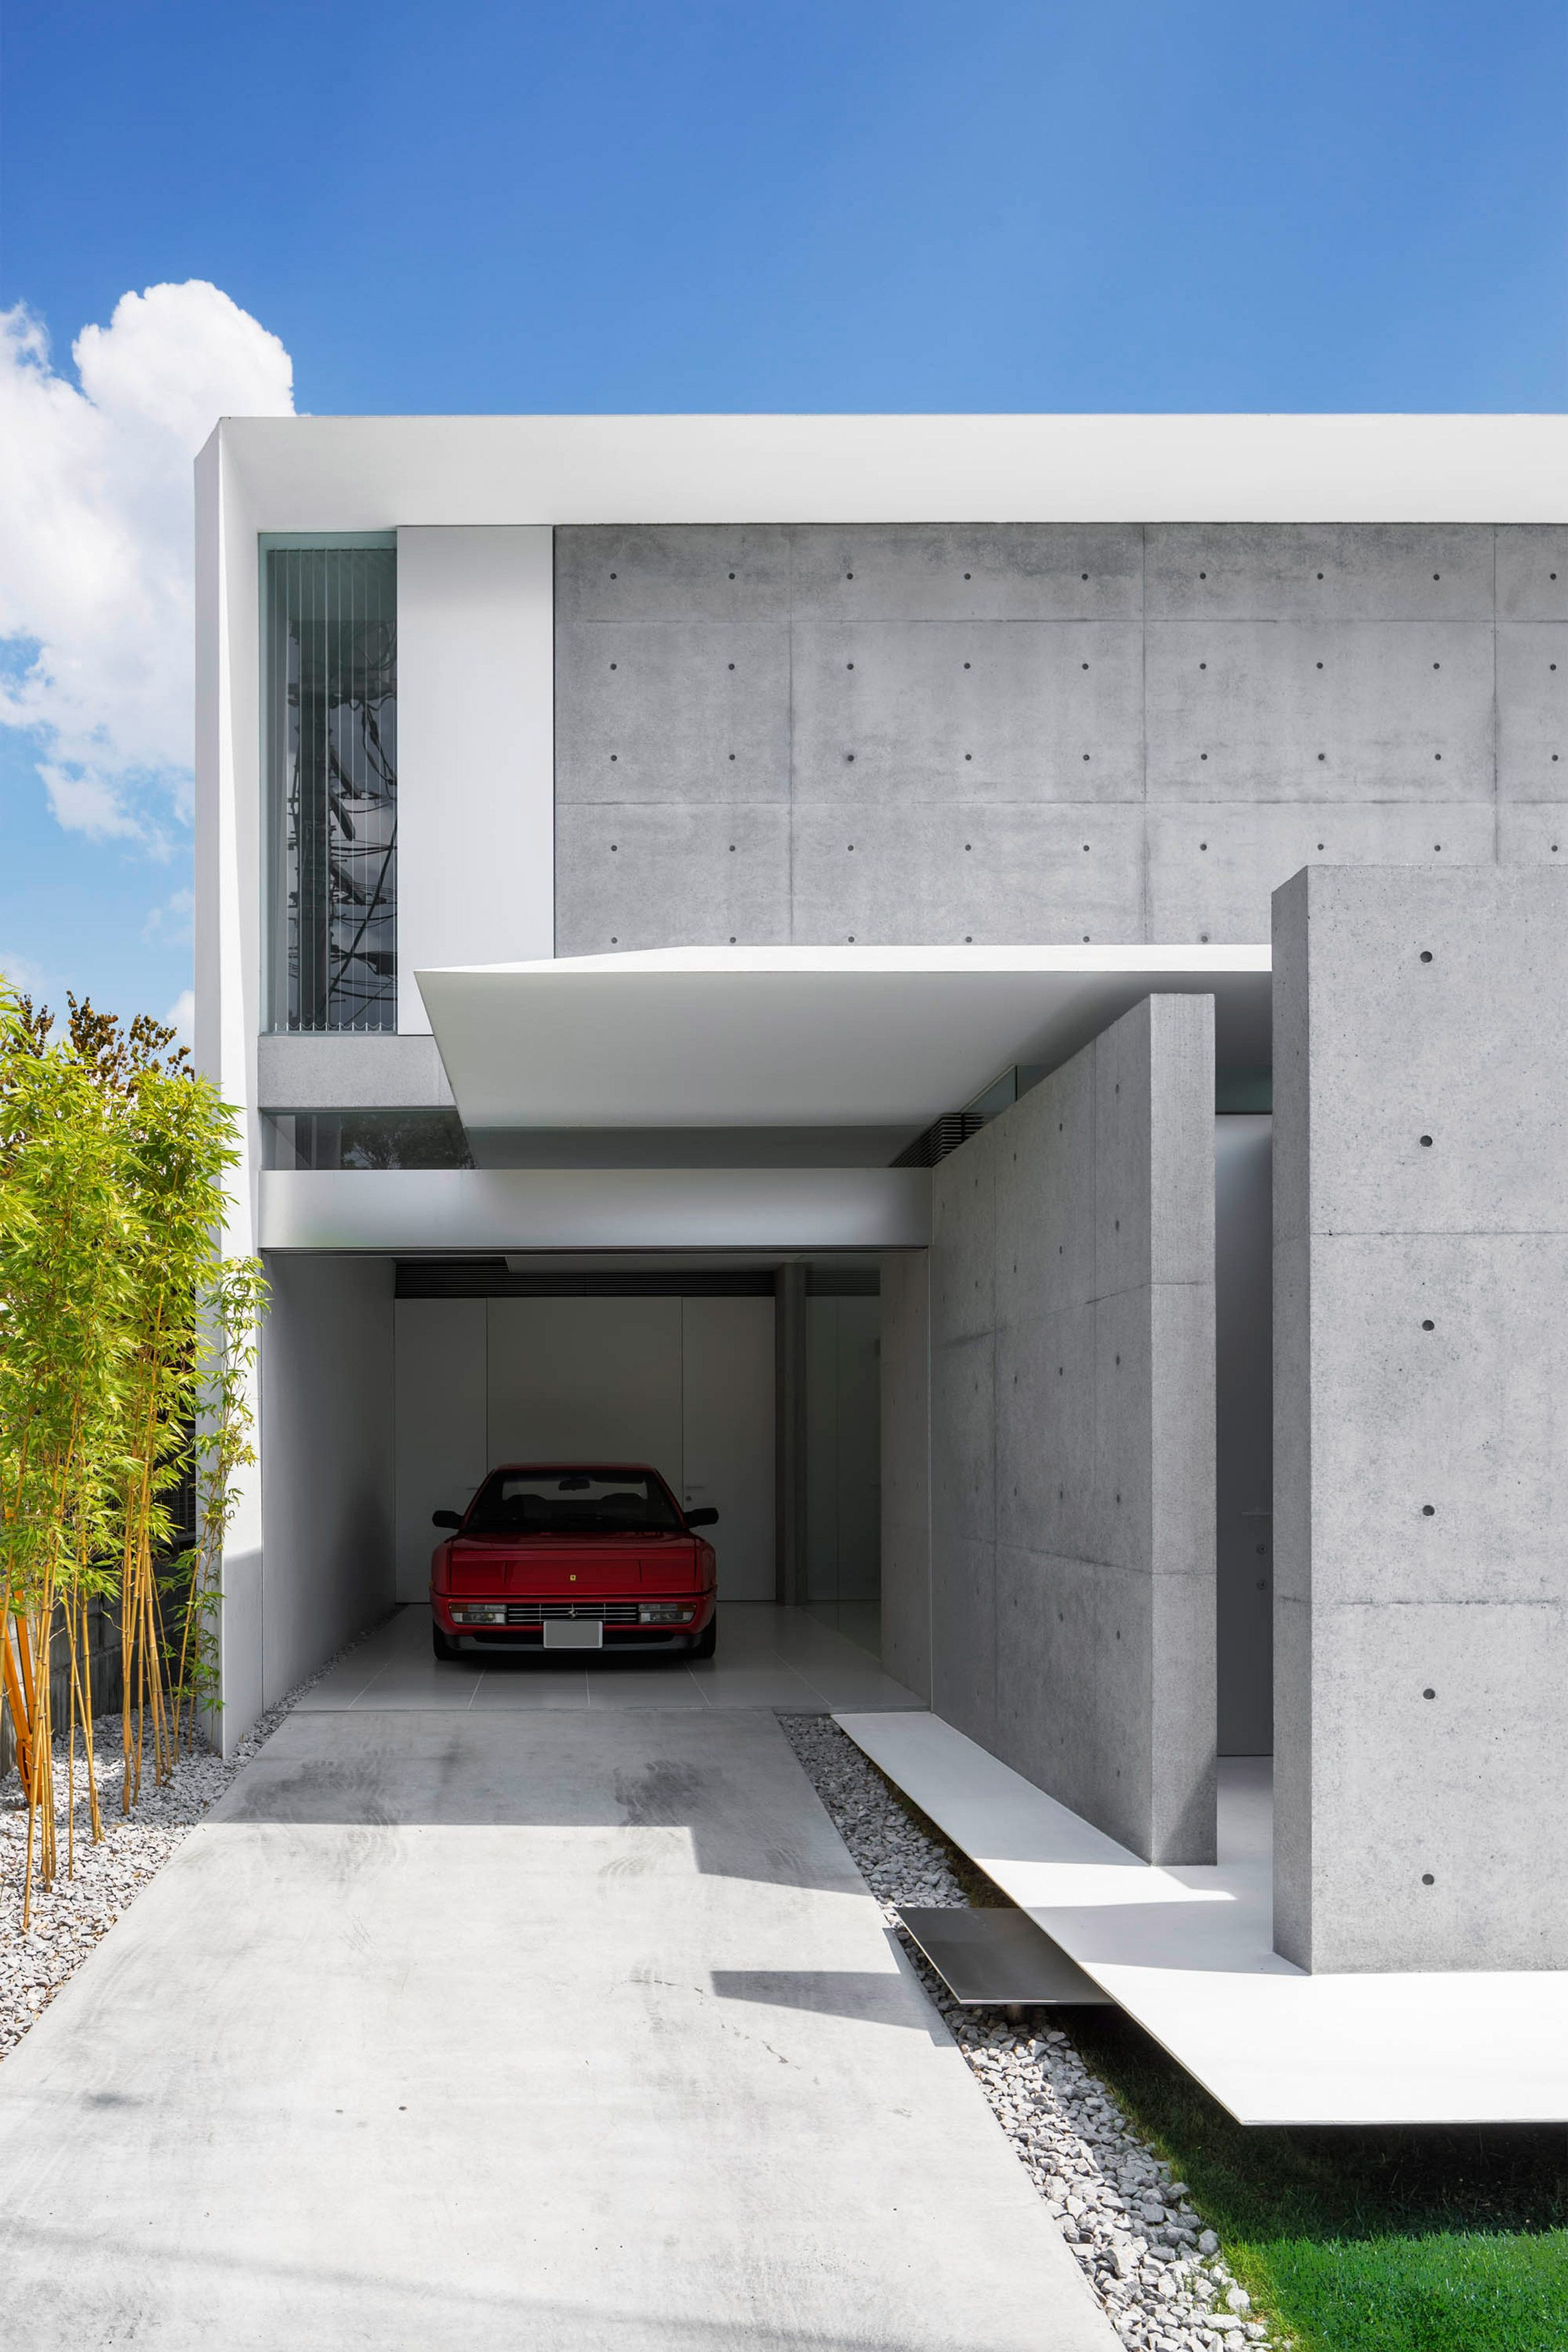 Three L Shaped Structural Sections With Wafer Thin Edges Wrap Around Concrete External Walls And Glazed Internal House Design Concrete House Architecture House